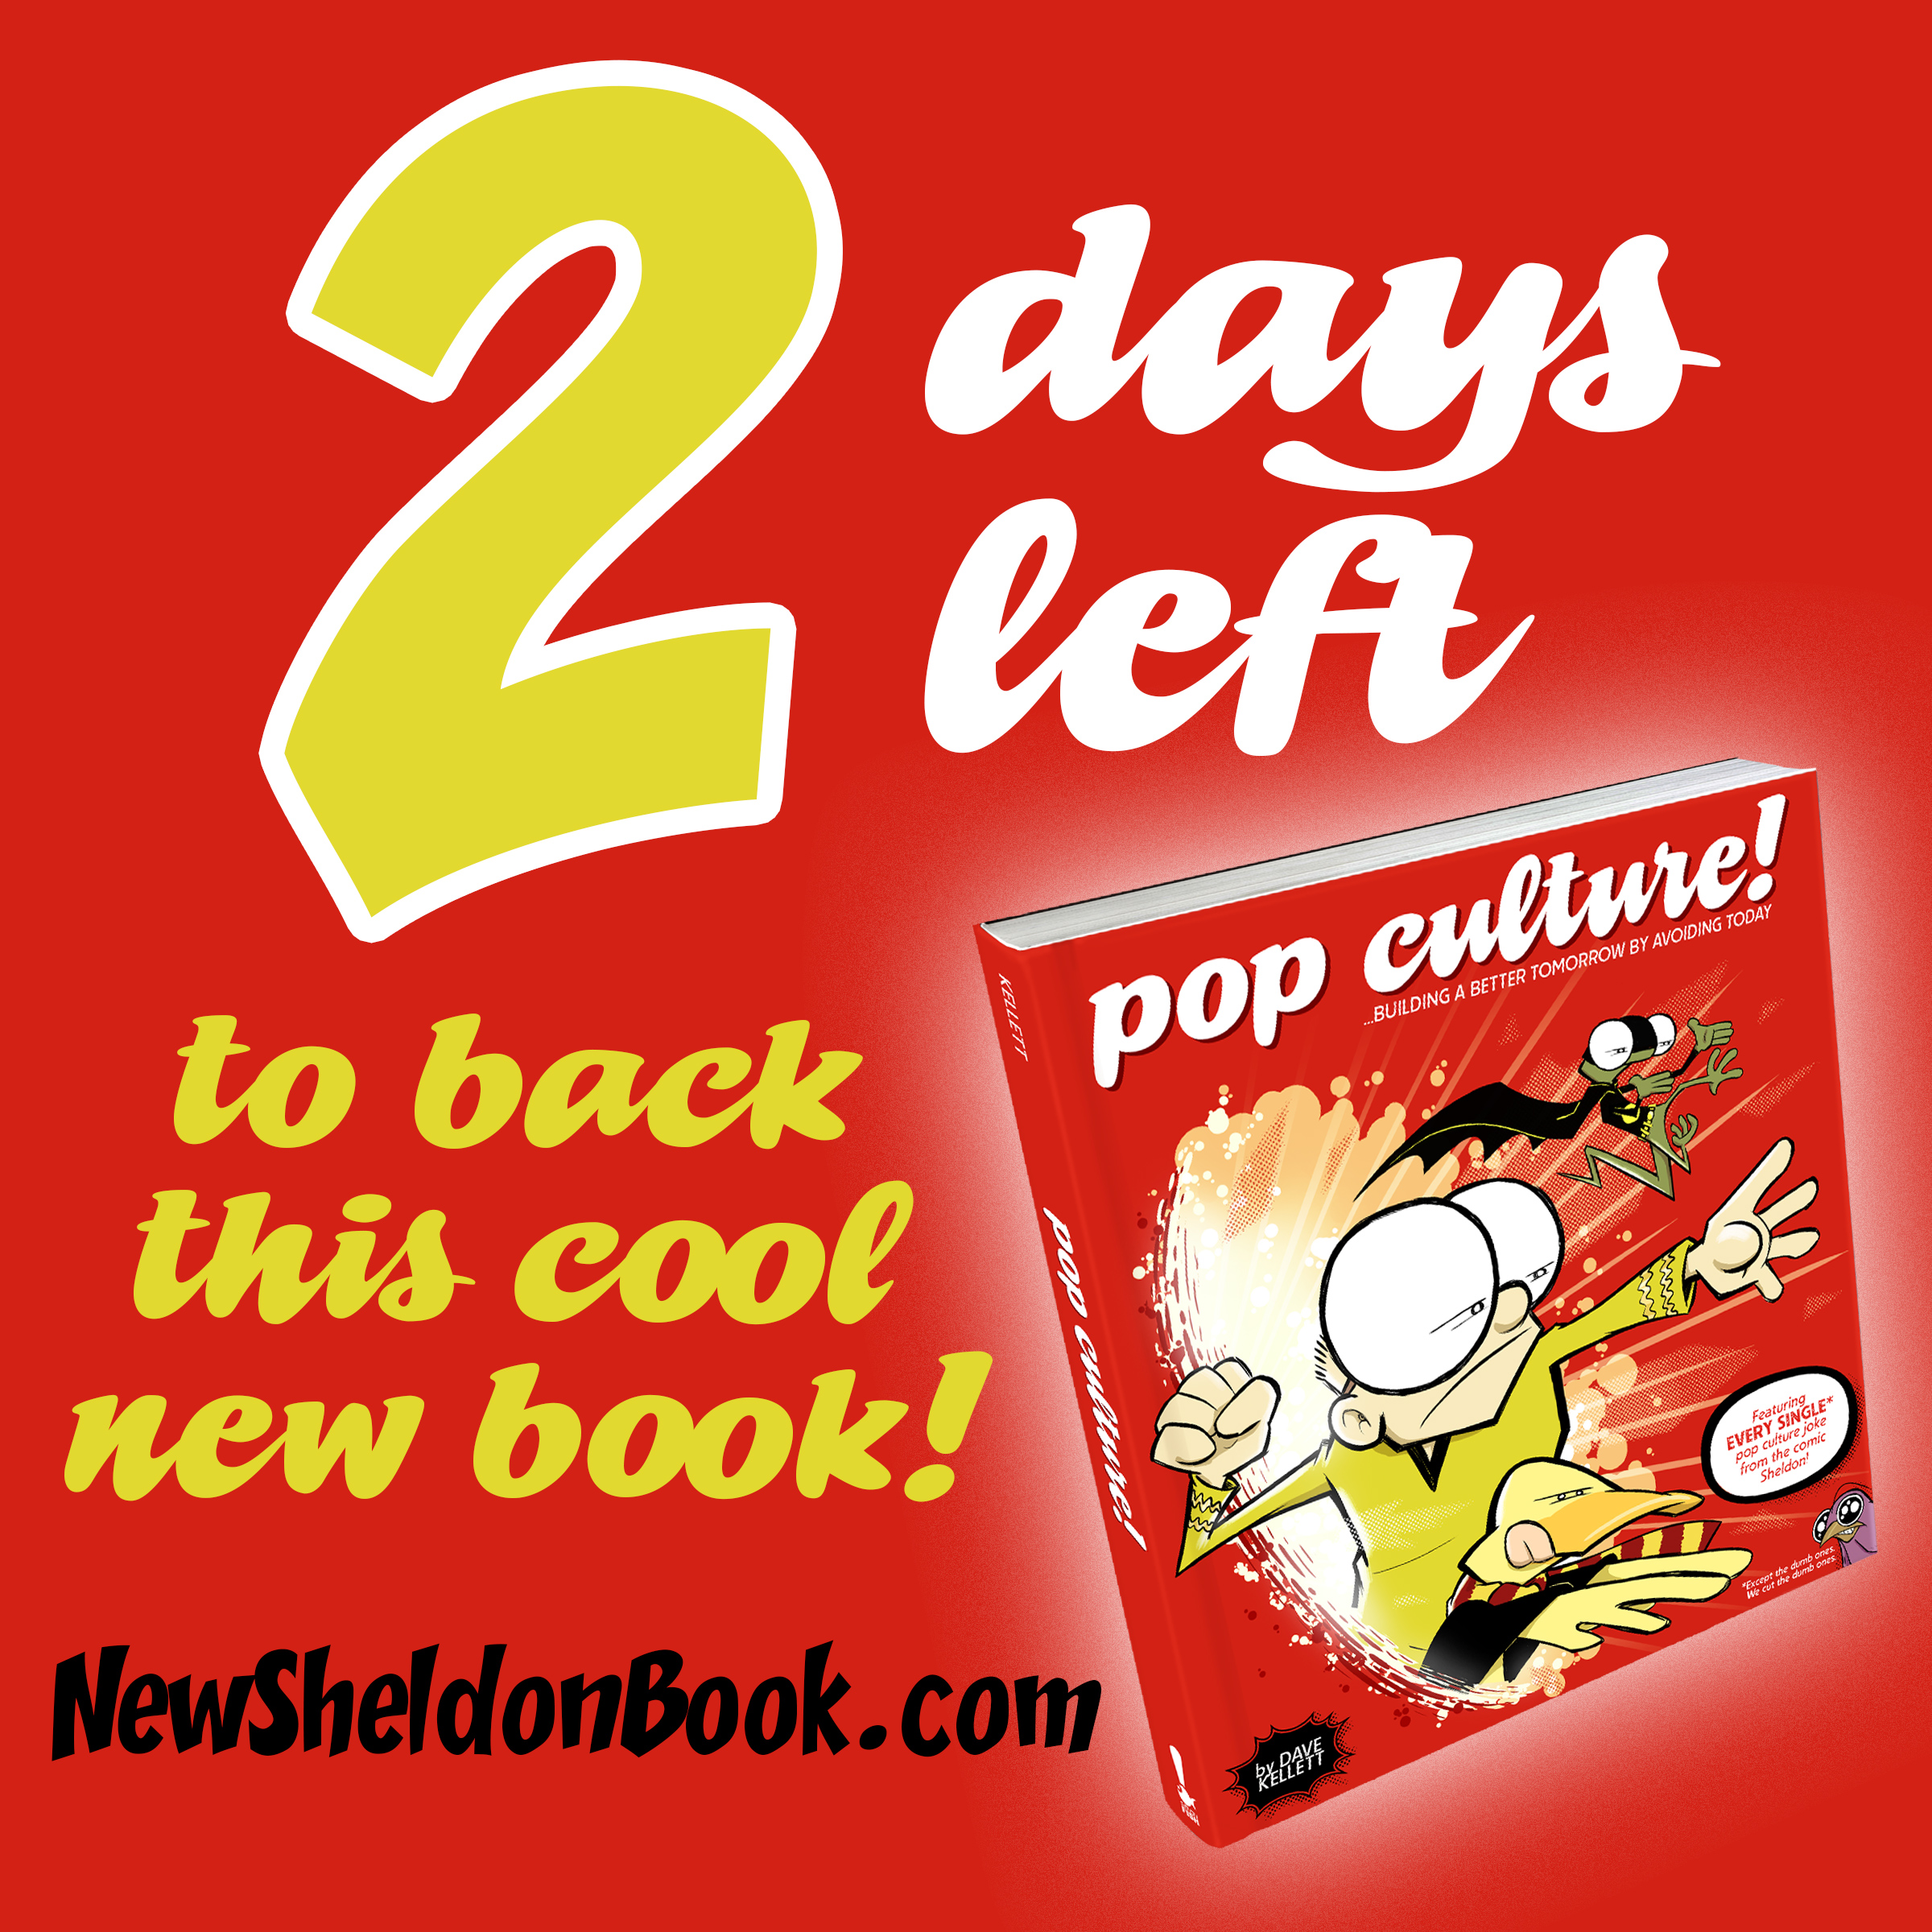 48 hours left to snag the new SHELDON book!